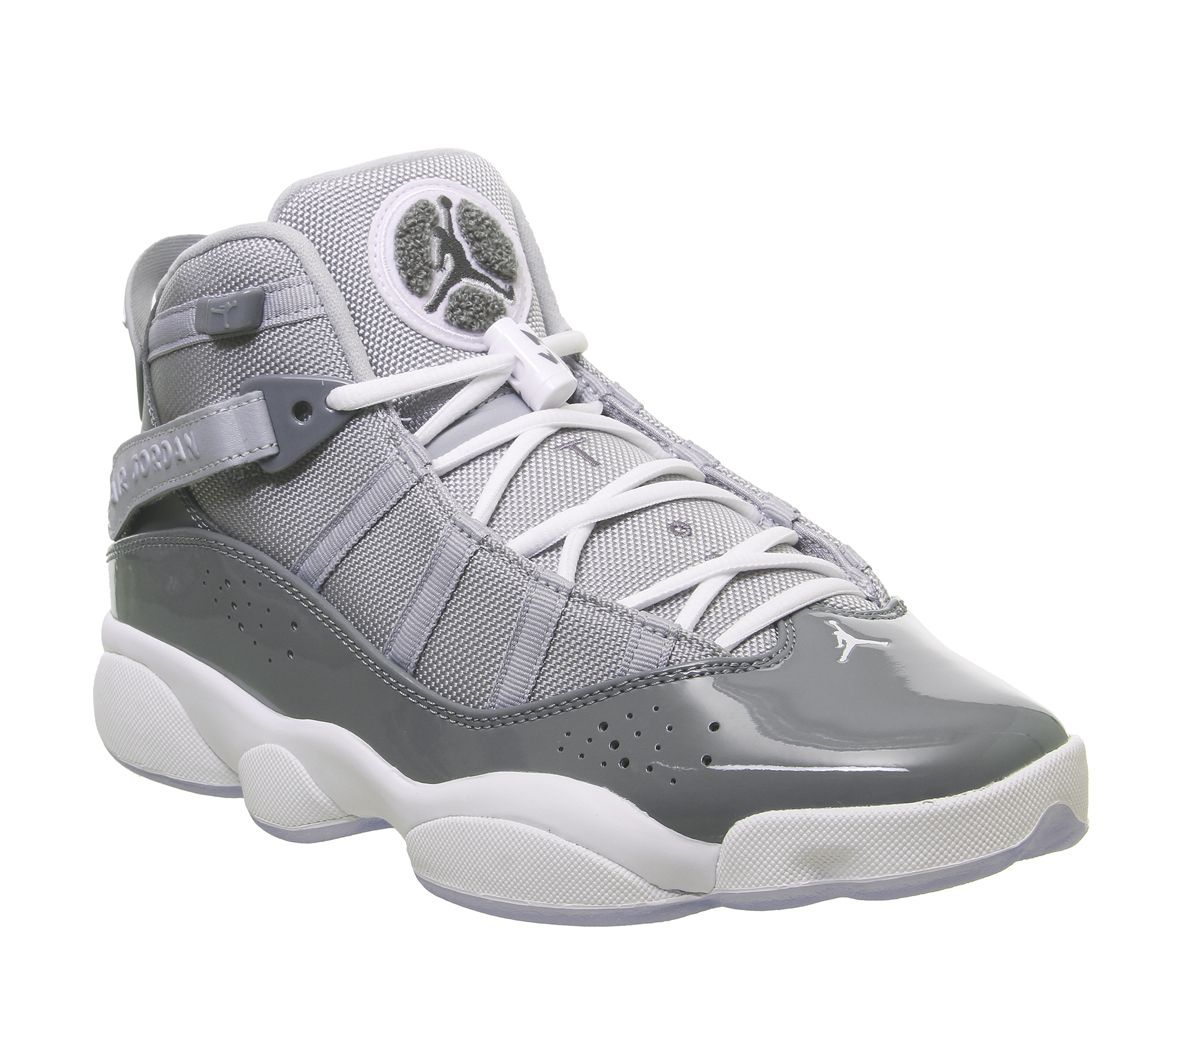 cheap for discount 72bc8 81a5b Jordan Jordan 6 Rings Cool Grey White Wolf Grey - His trainers